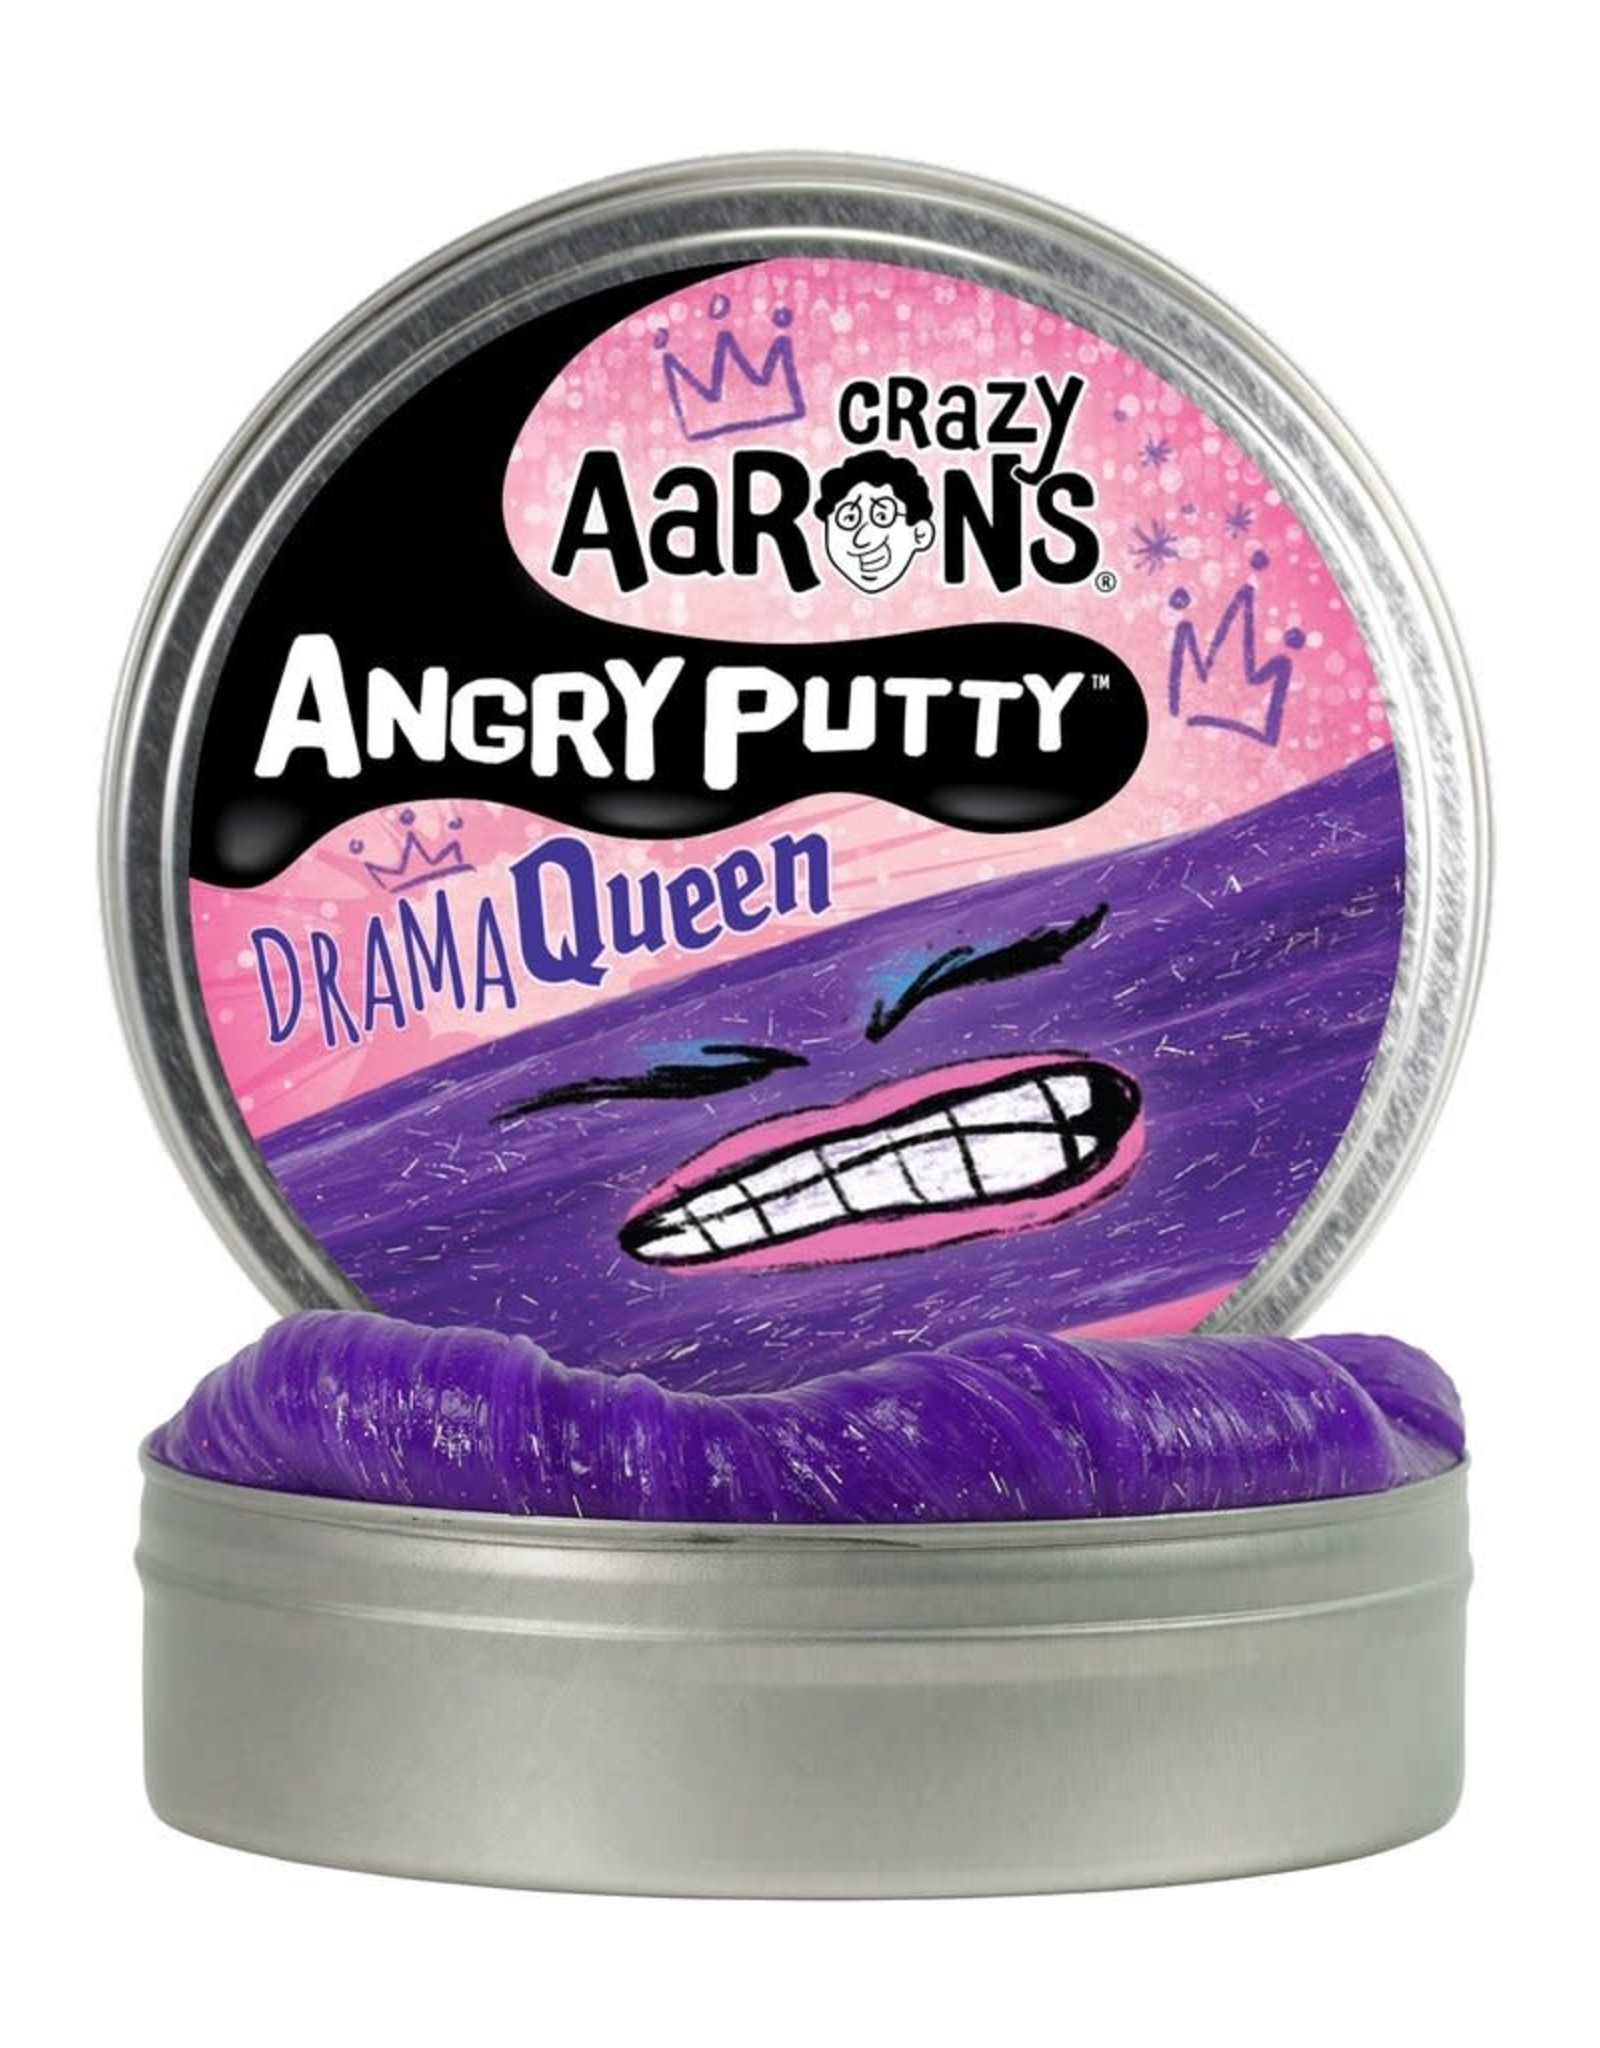 Crazy Aarons Putty Angry Drama Queen